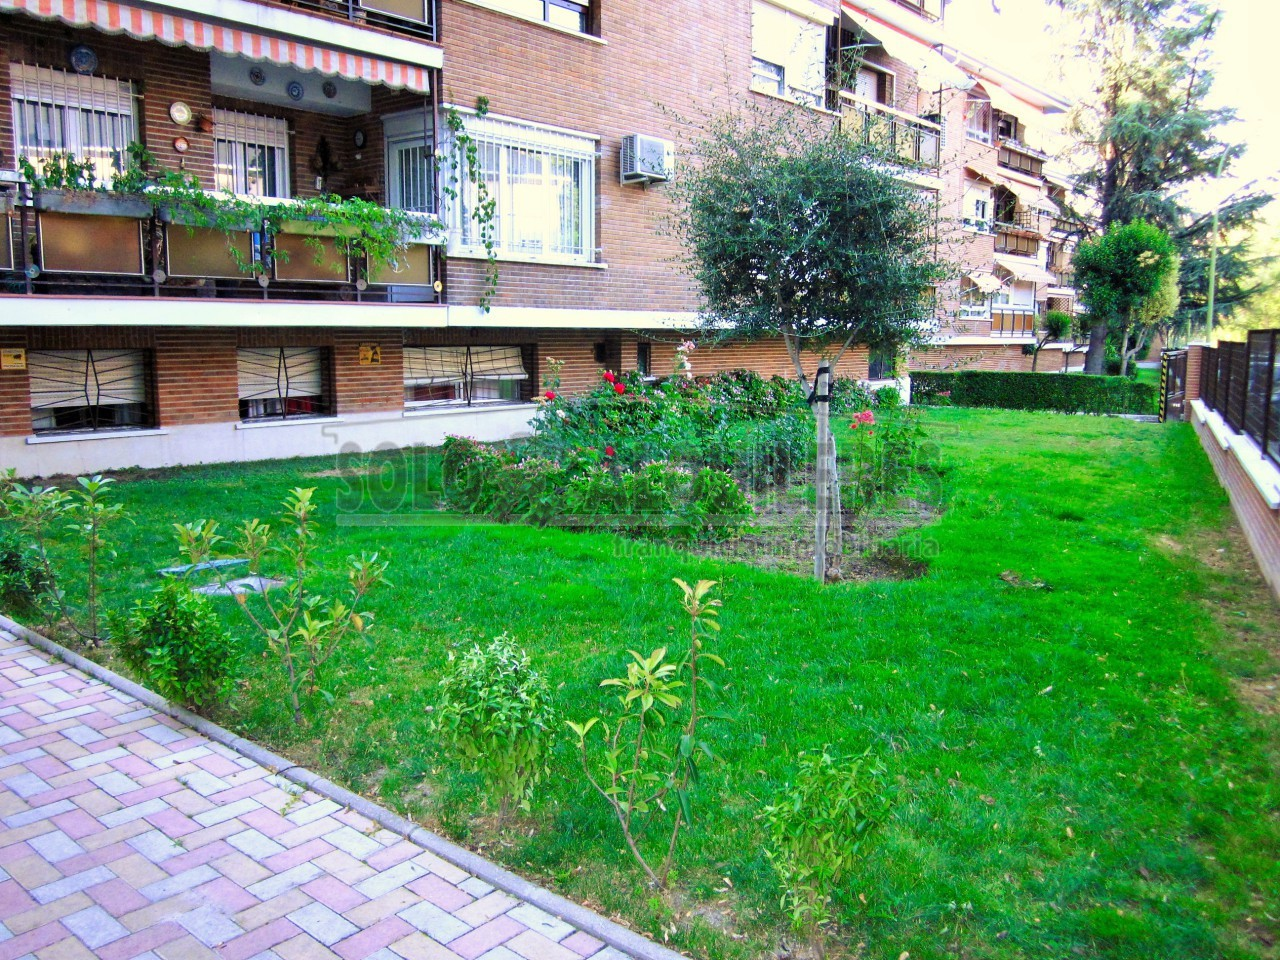 flat-for-rent-in-calle-josé-fentanes-moncloa-aravaca-in-madrid